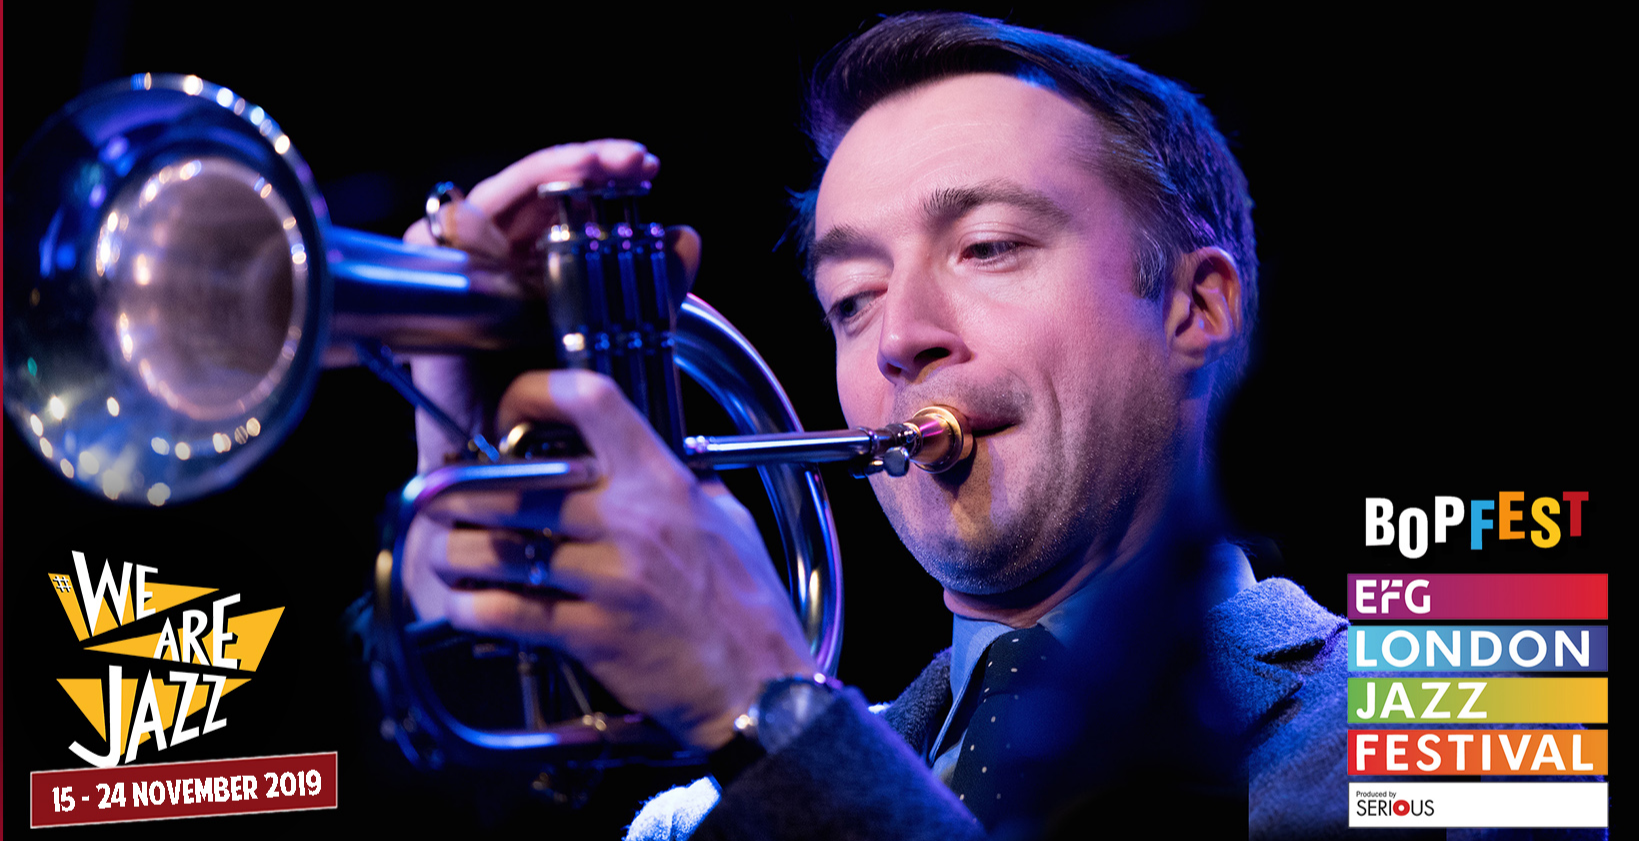 EFG LONDON JAZZ FEST & BOPFEST: STEVE FISHWICK NONET FT. MICHAEL WEISS